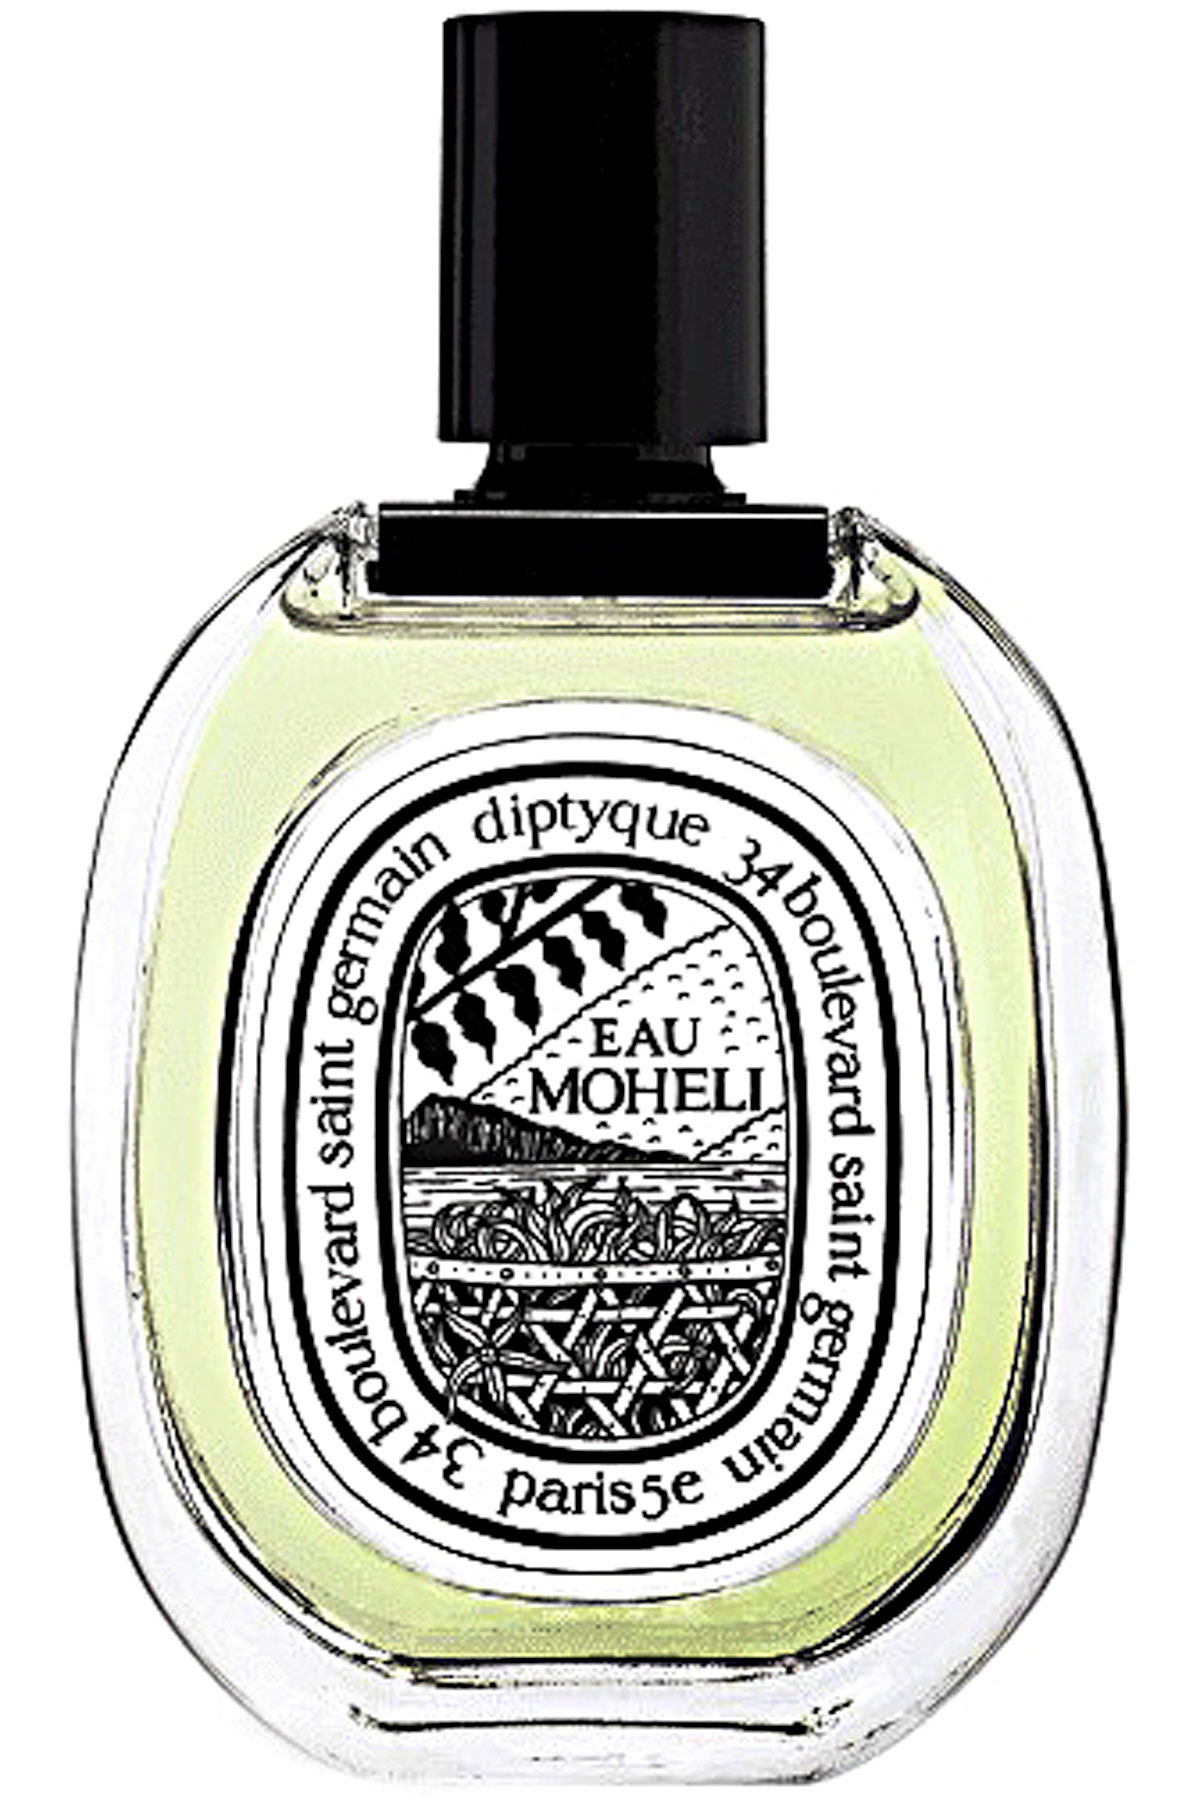 Diptyque Fragrances for Men, Eau Plurielle - Eau De Toilette - 200 Ml, 2019, 200 ml